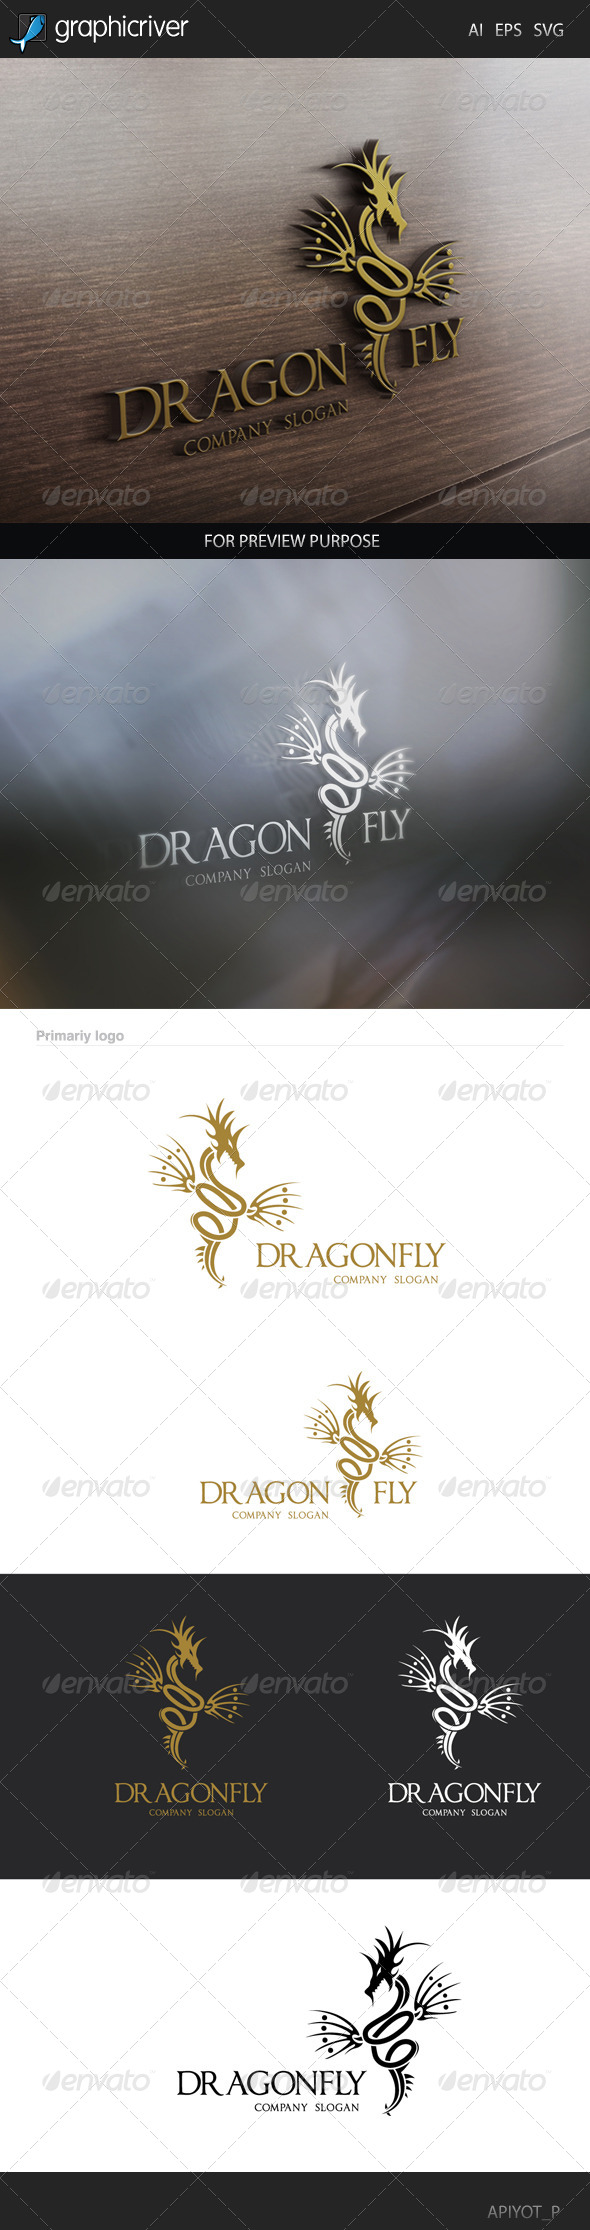 GraphicRiver Dragon Fly logo 8531361